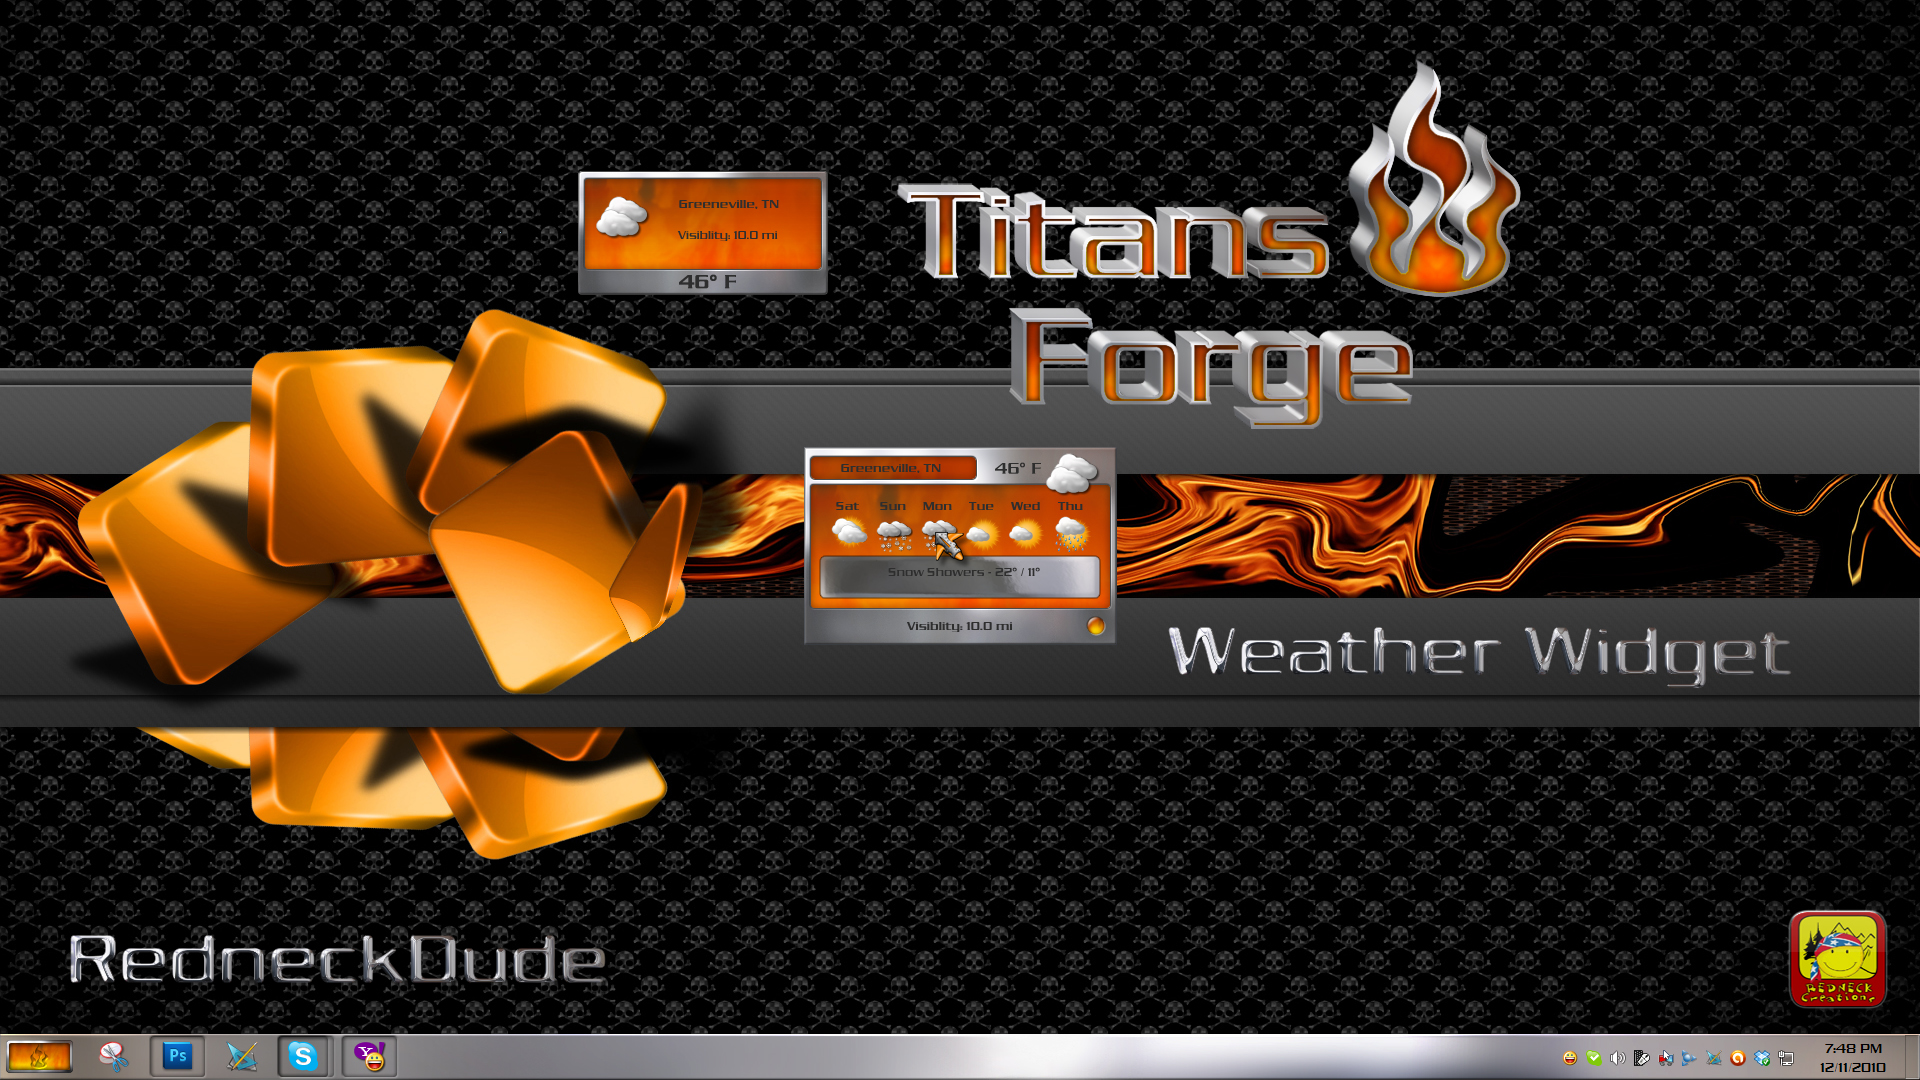 Titan's Forge Weather Widget